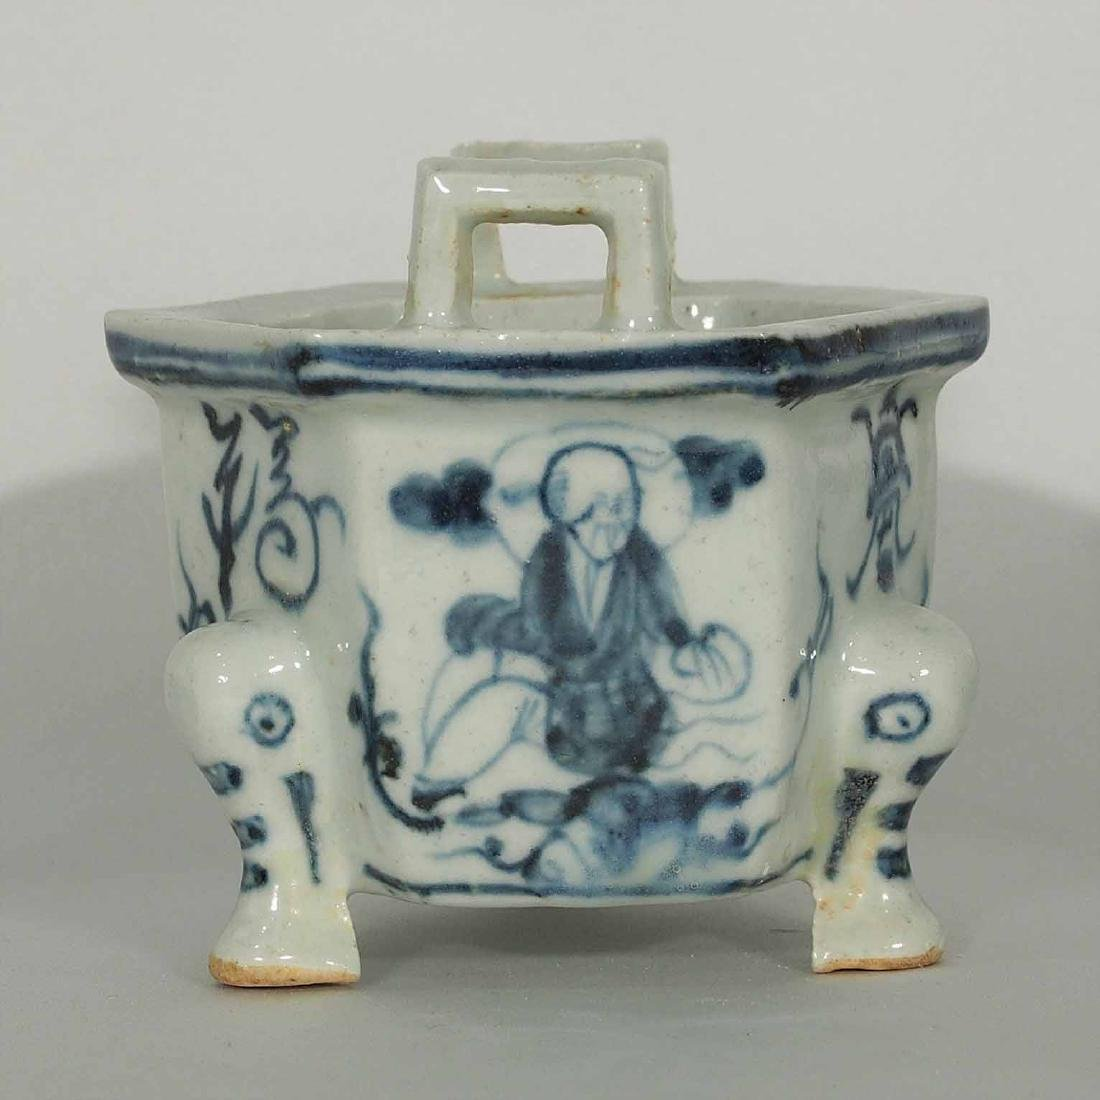 Hexagonal Tripod Censer, 16th Century, Ming Dynasty